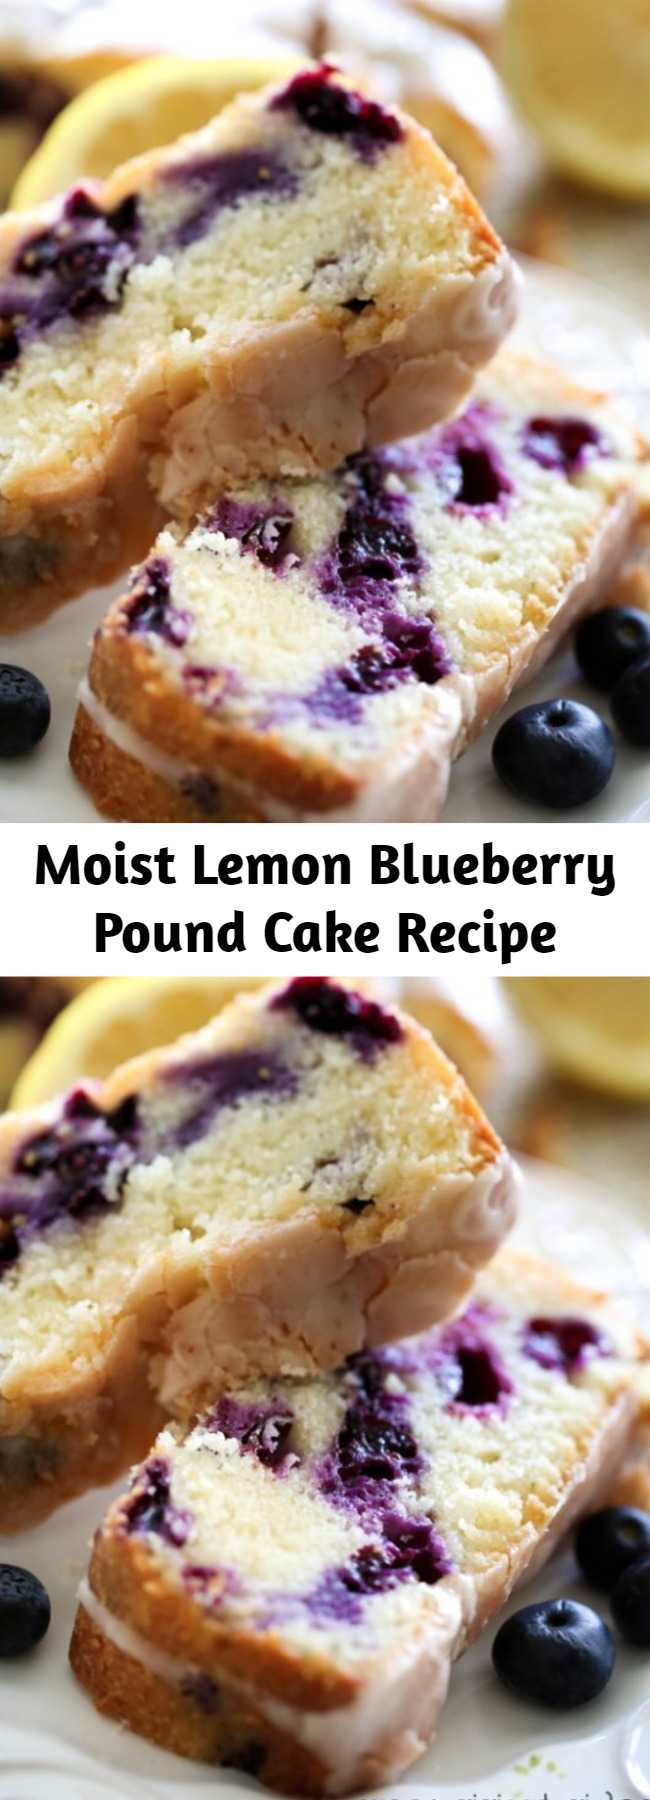 Moist Lemon Blueberry Pound Cake Recipe - A delicious and moist pound cake that is bursting with refreshing and amazing flavor!